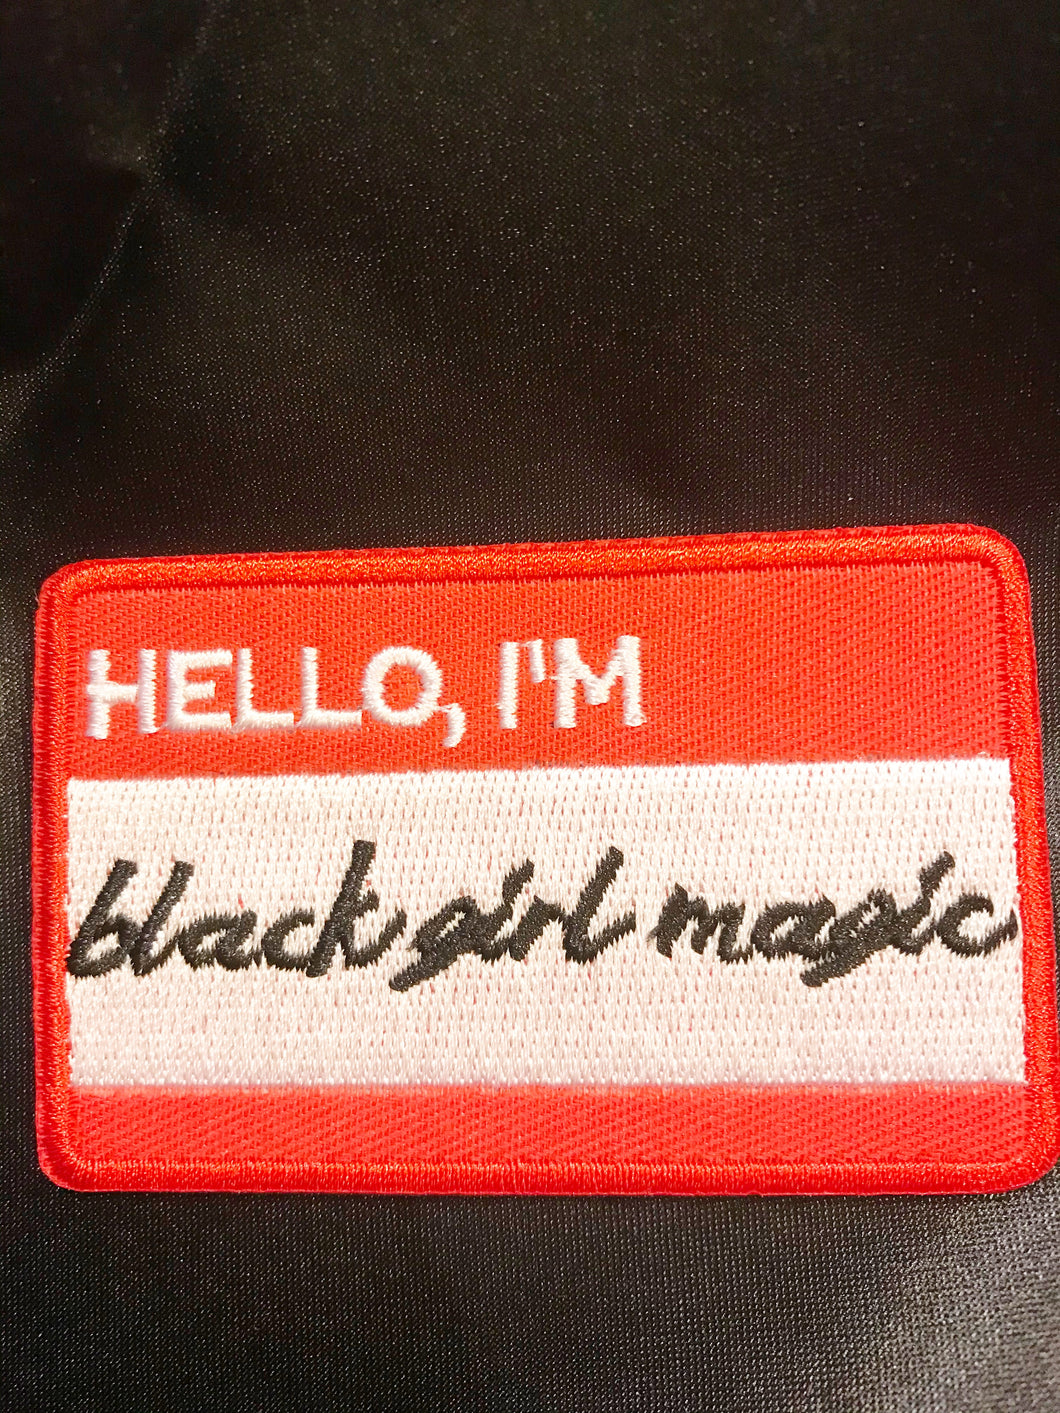 Black Girl Magic Name Tag Patch